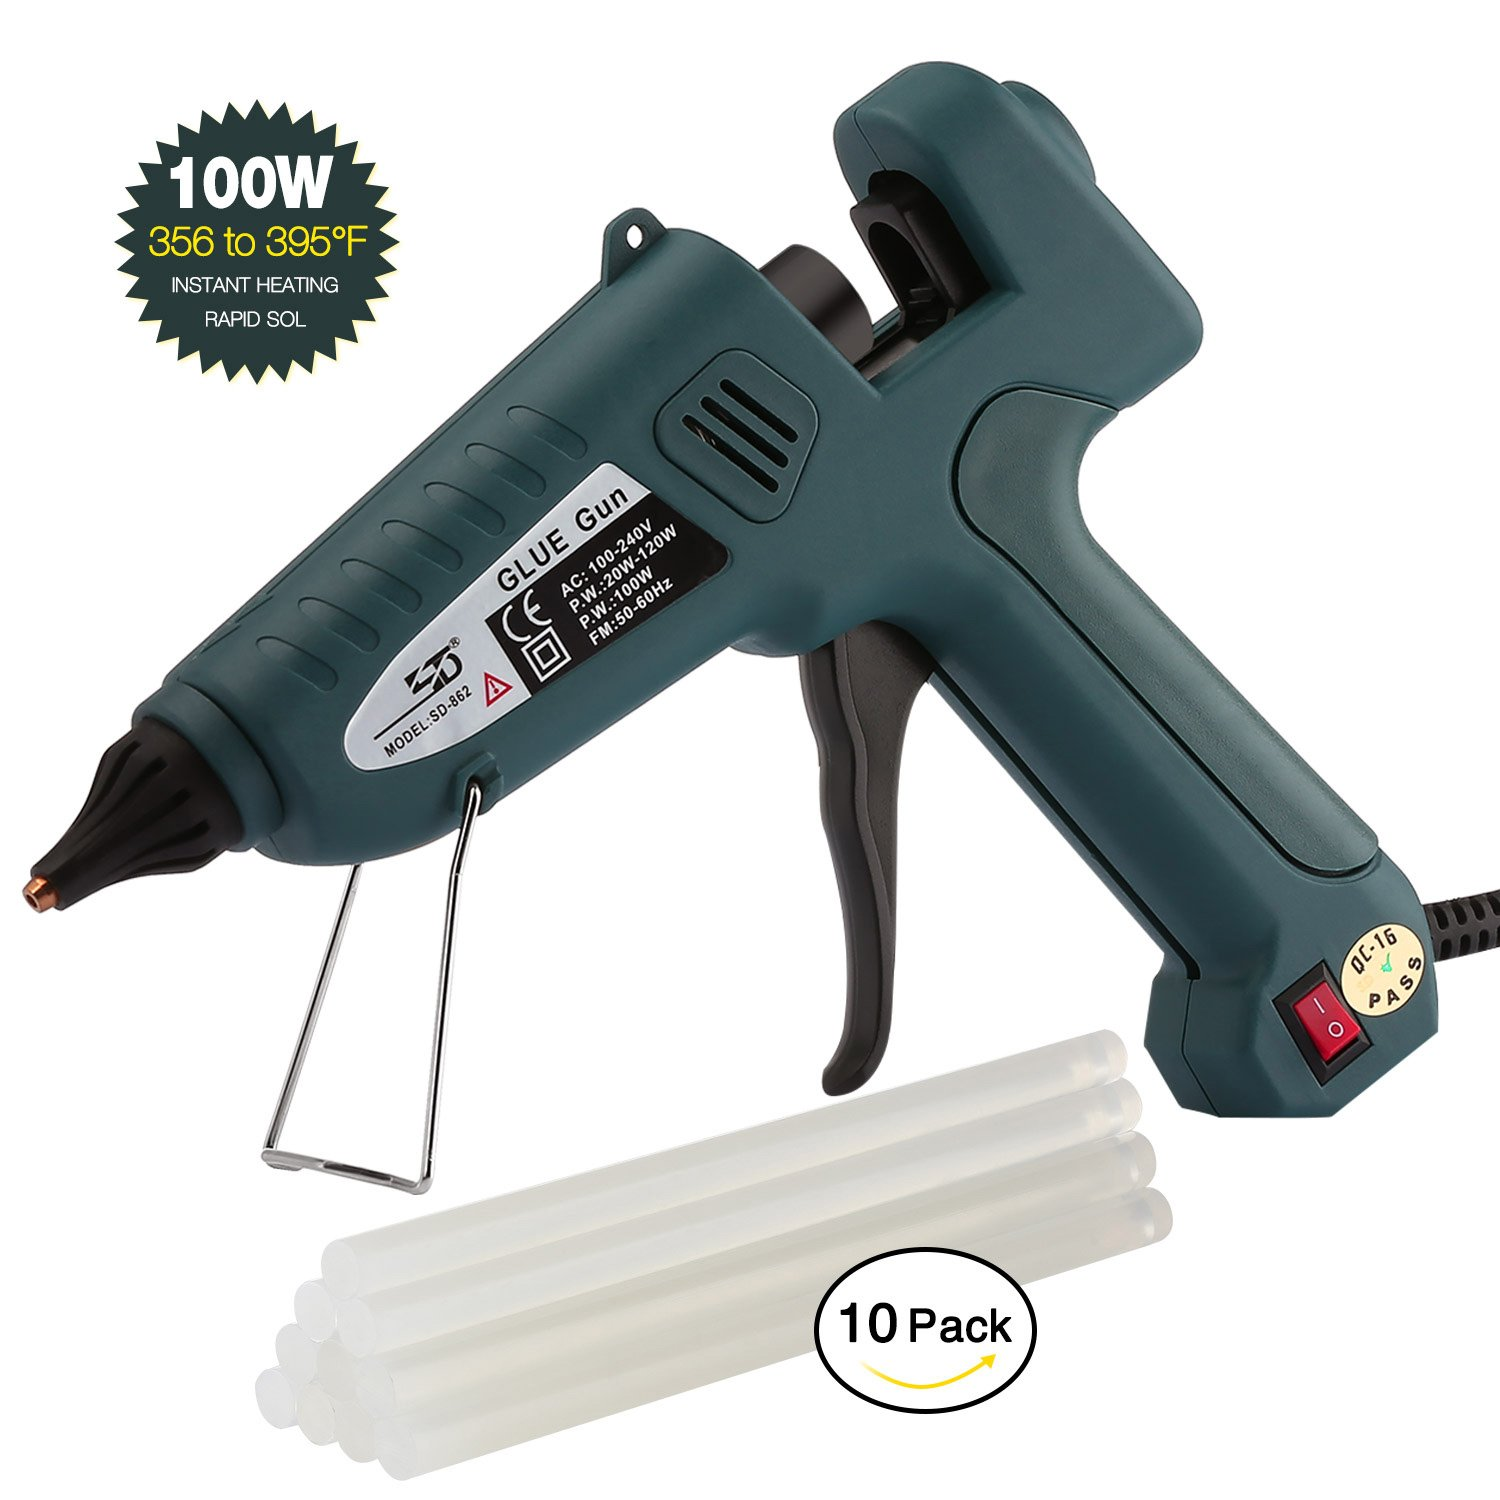 Glue Gun,100W Industrial Glue Gun High Temperature Hot Melt Glue Gun+10pcs Glue Sticks